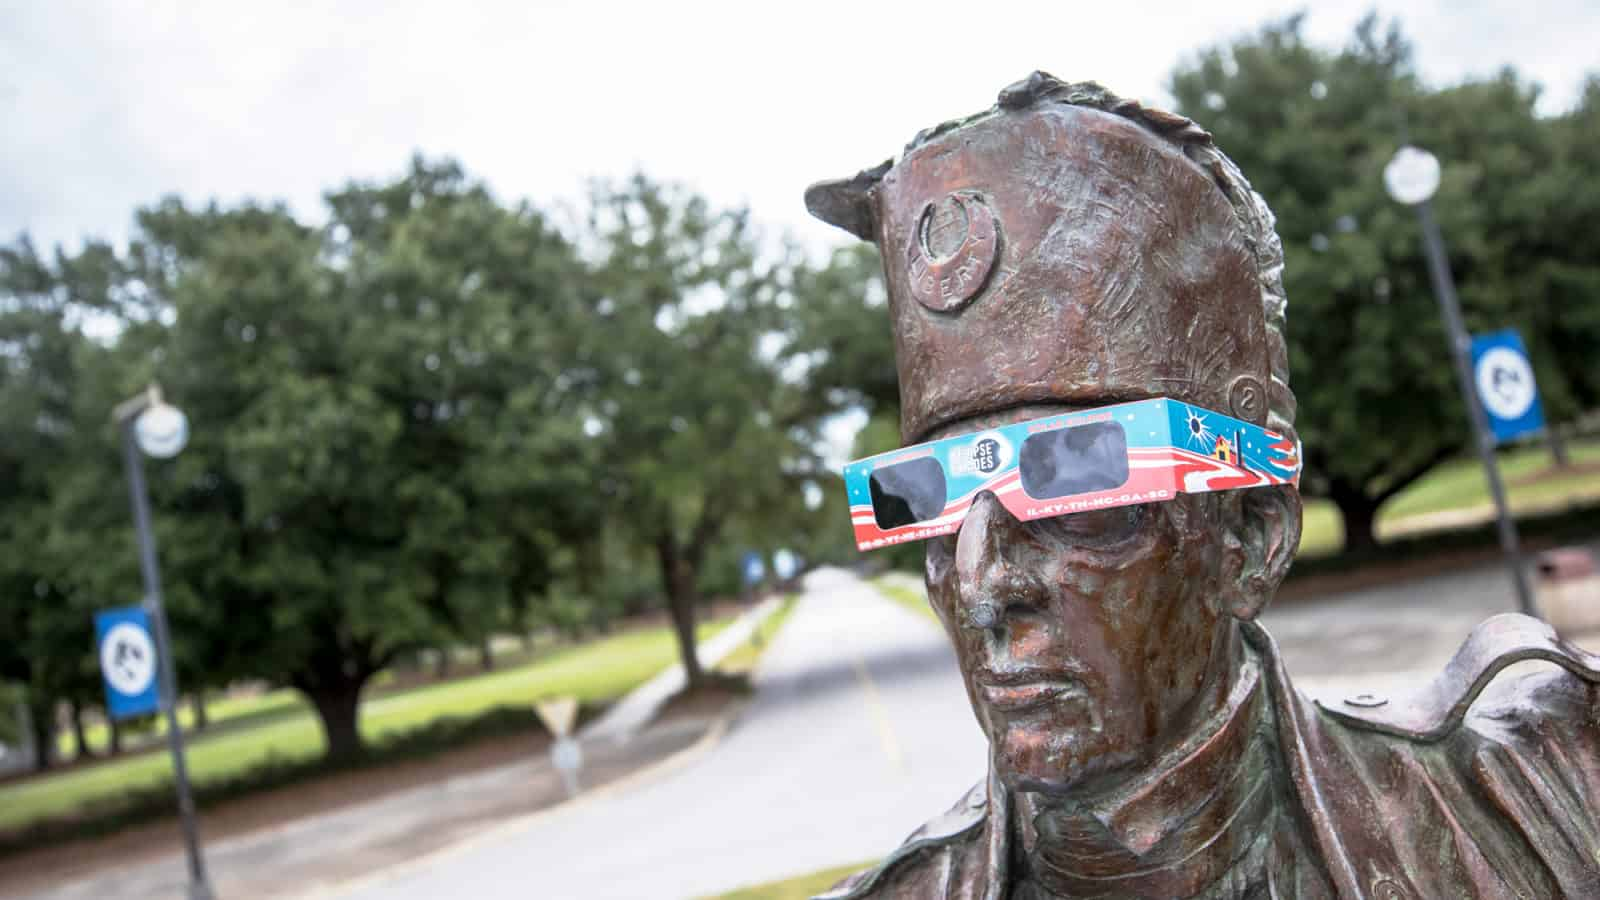 FMU professor warns of bogus eclipse glasses